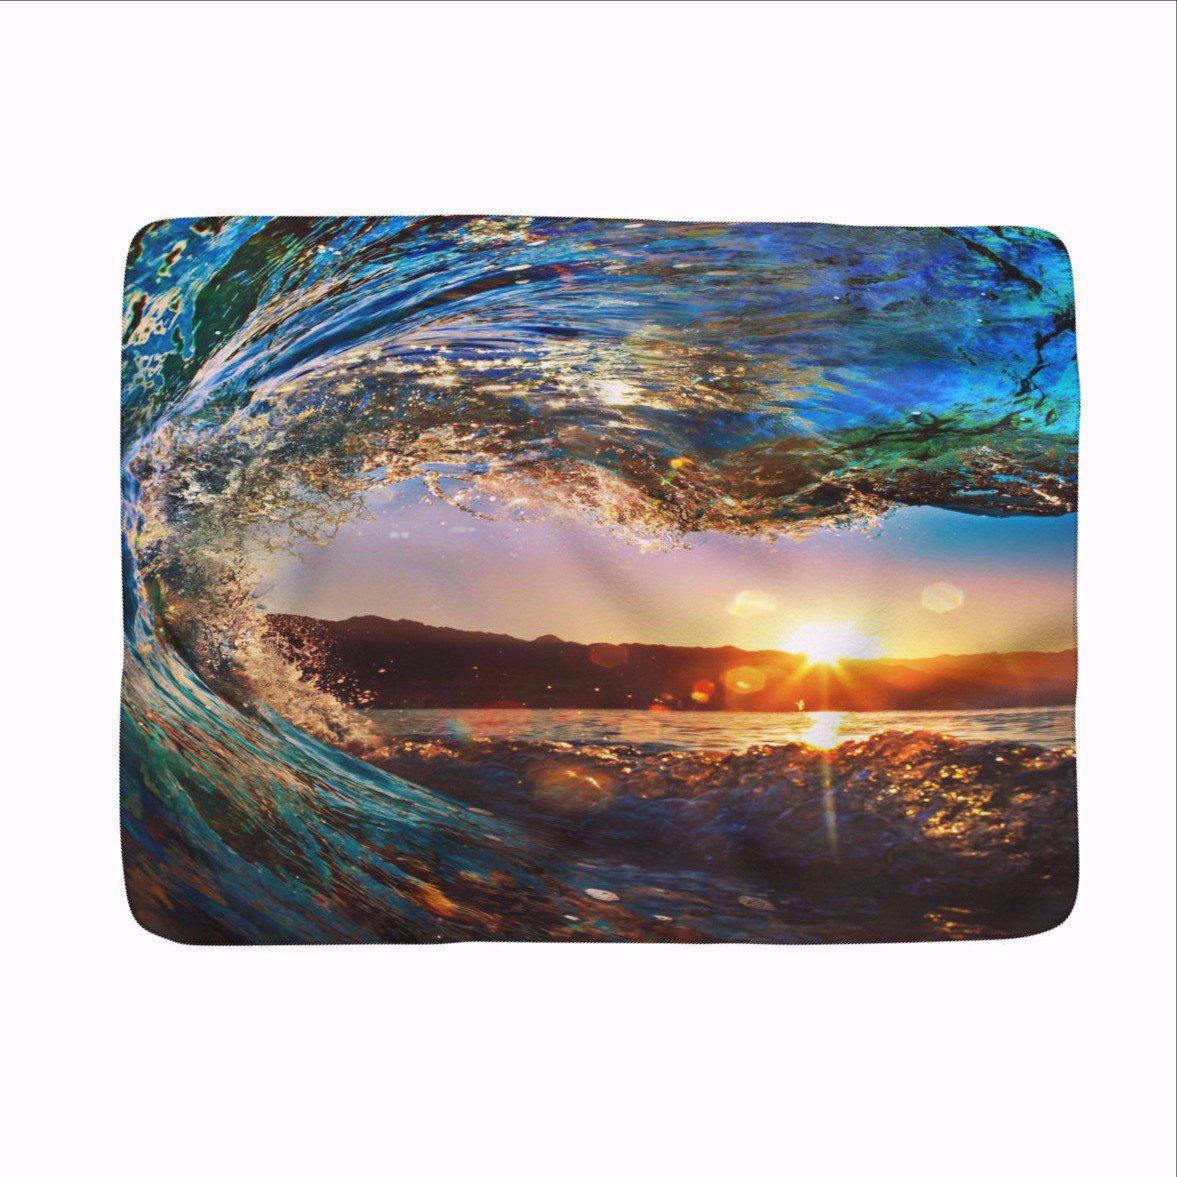 "Eye of the Ocean Cozy Fleece Blanket -made in usa-Blanket-50"" x 60""-Coastal Passion"